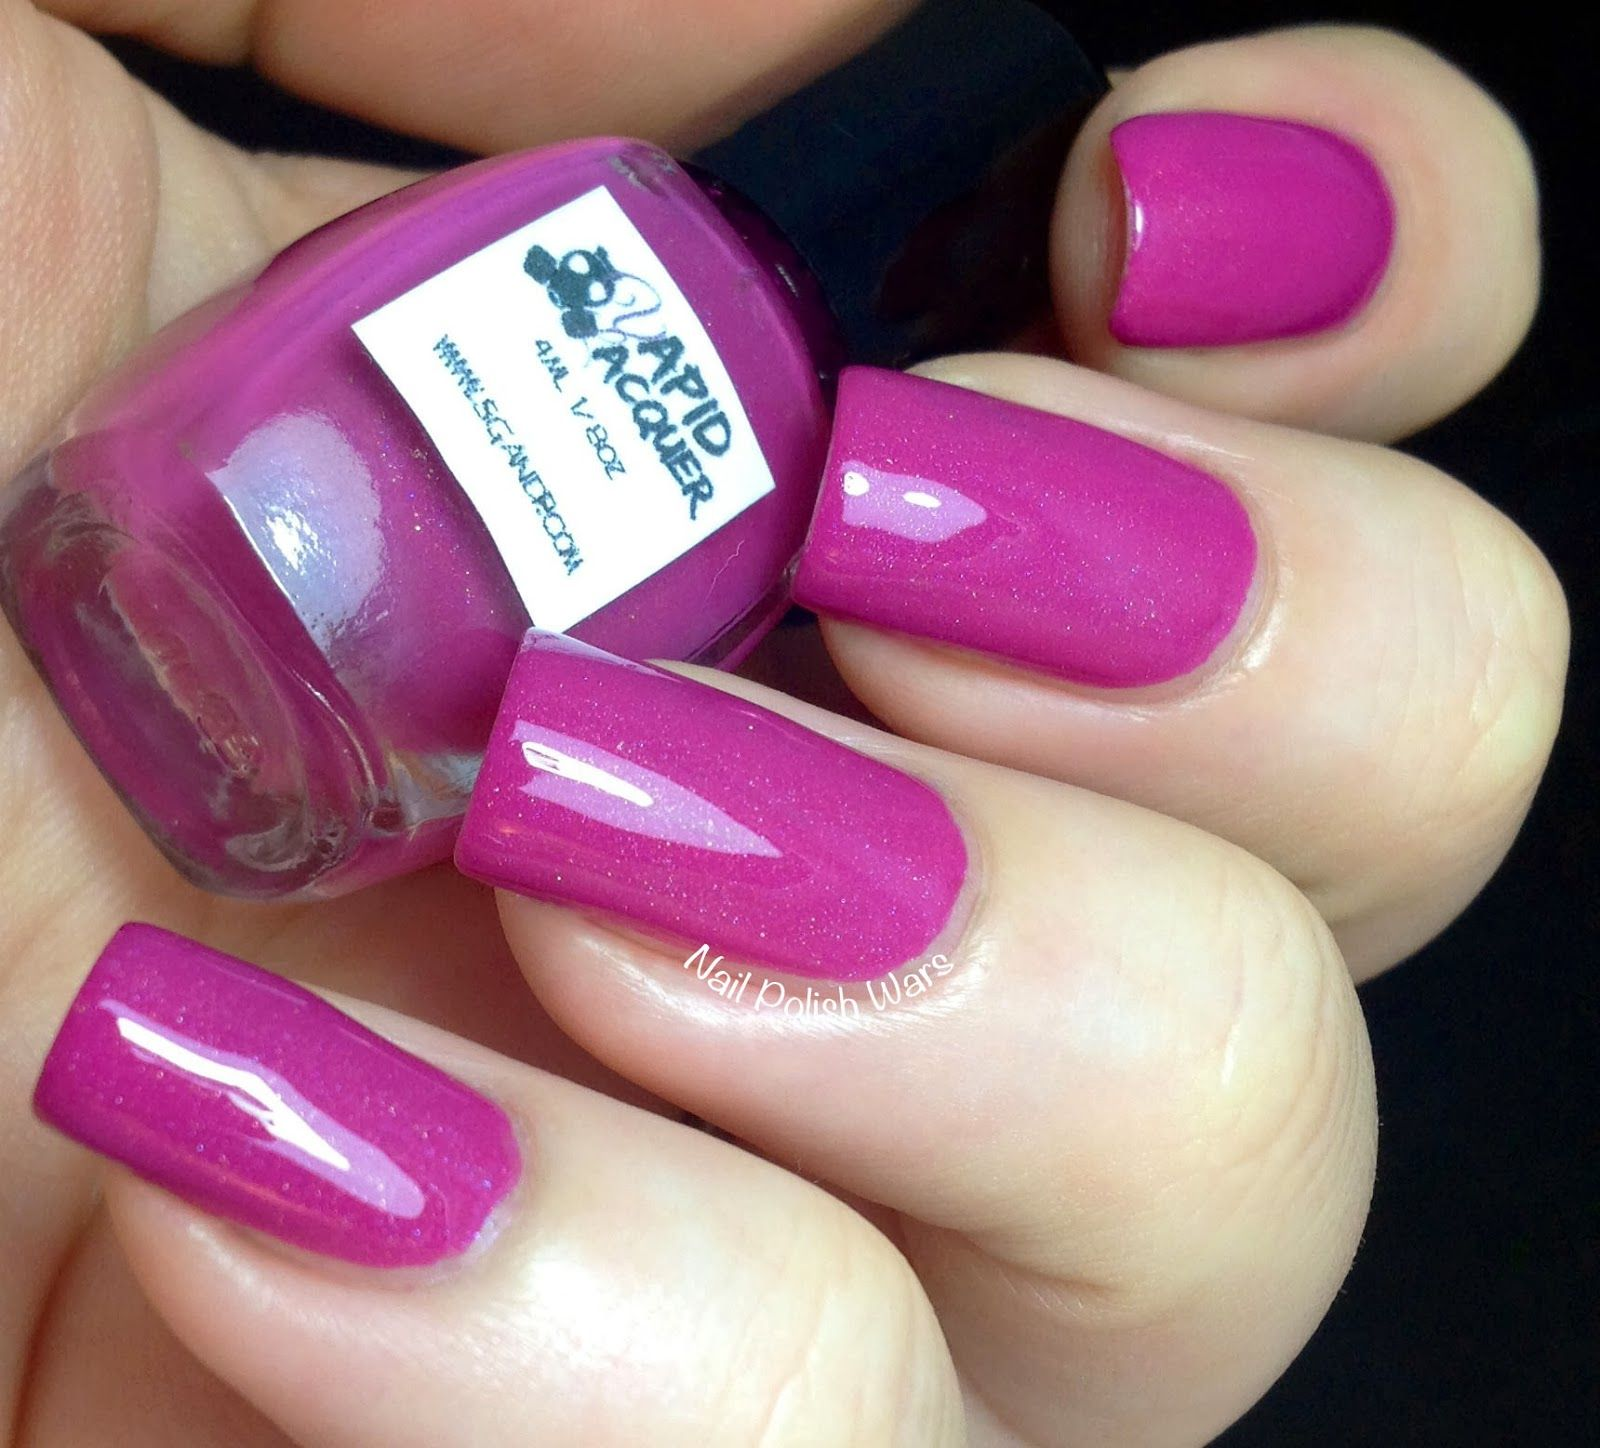 Vapid Lacquer Swatch | polish wish list | Pinterest | Swatch and ...